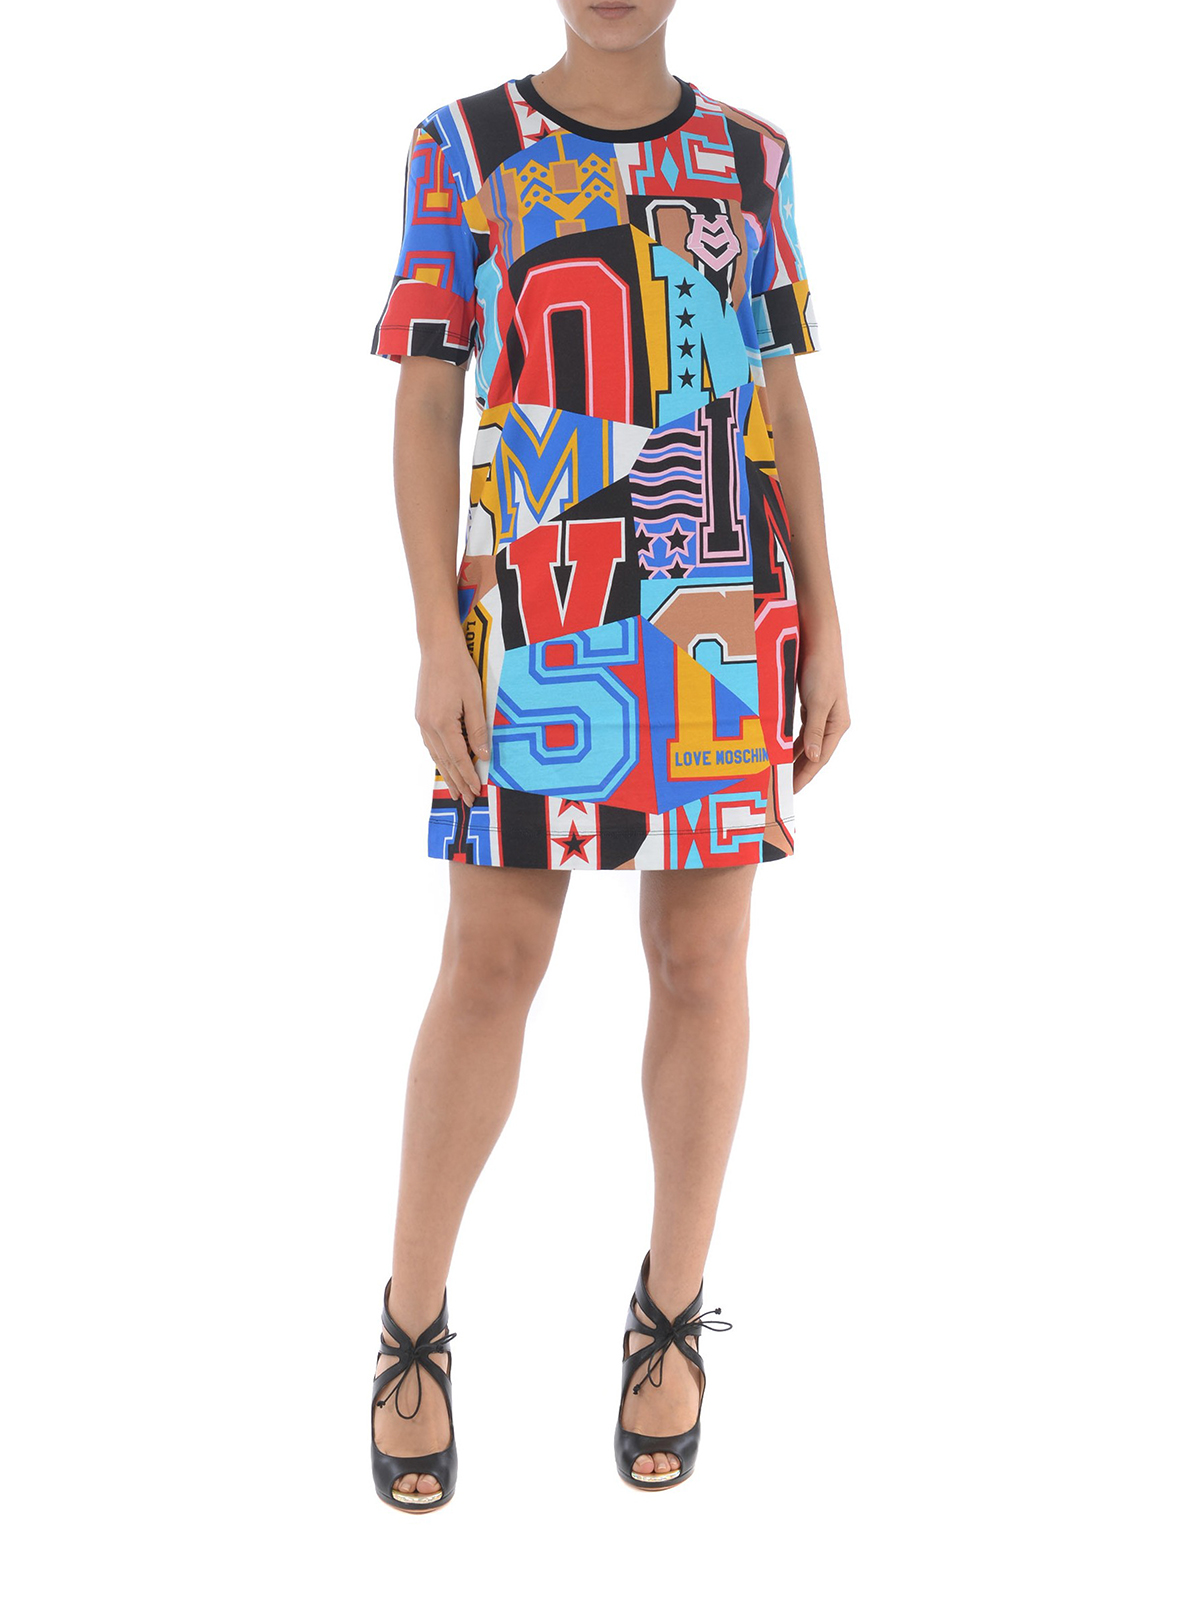 Courte Robes Robe Courtes W5a02 Love Moschino Multicolore rxEBoeCdWQ